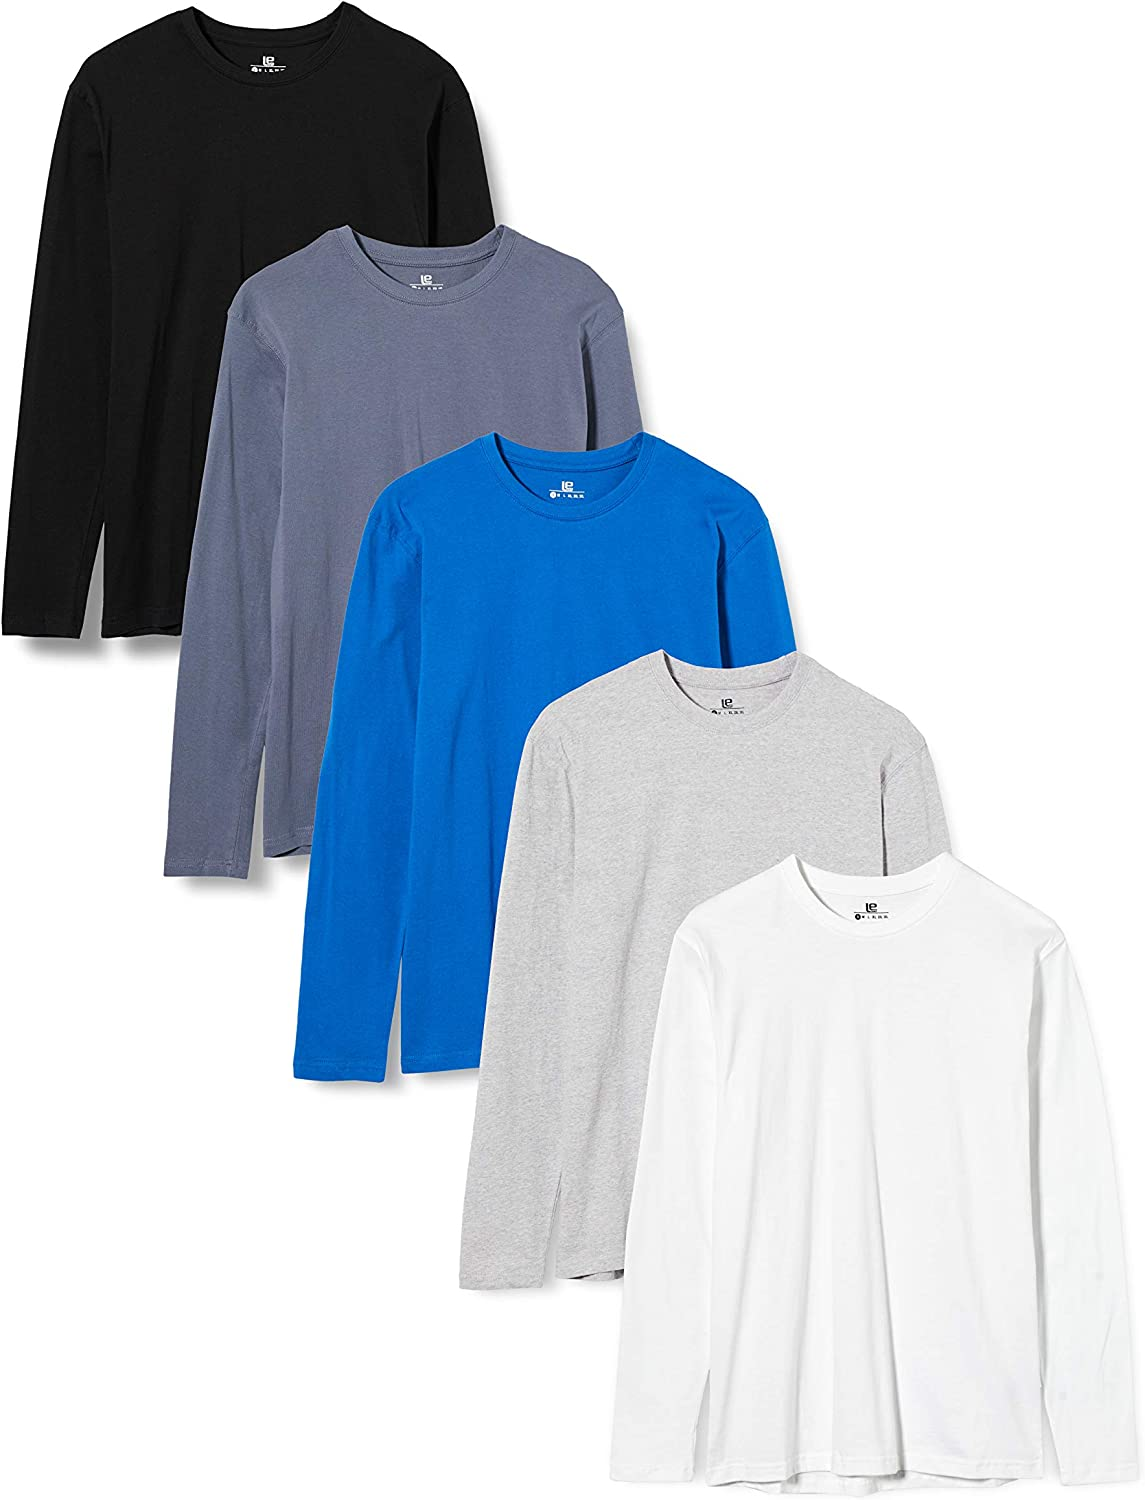 Lower East Camiseta de manga larga Hombre, Pack de 5